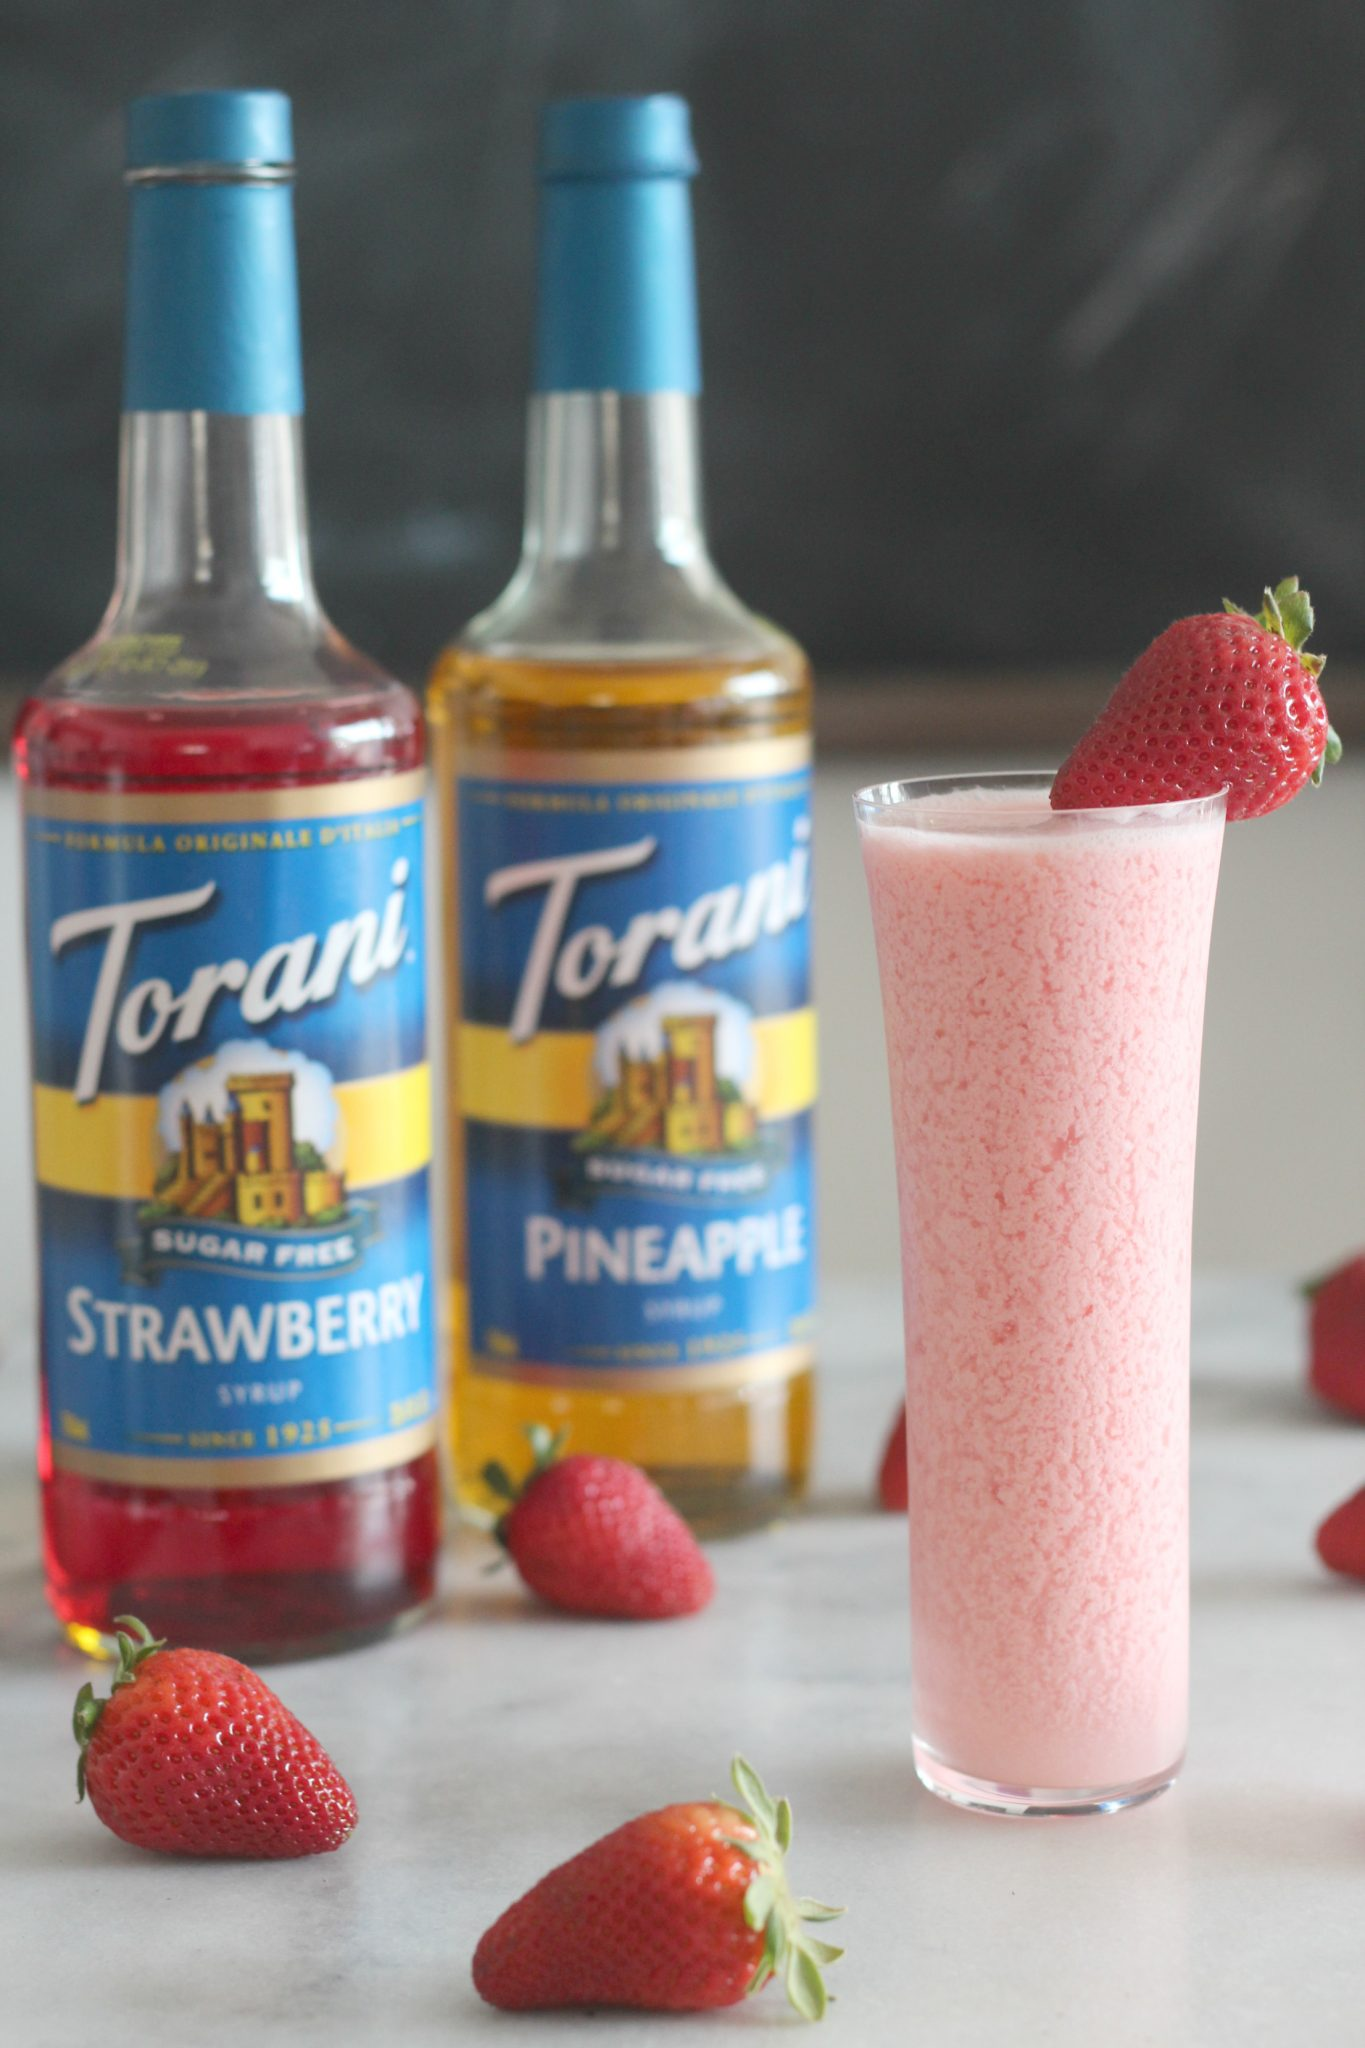 This recipe for Sugar Free Strawberry Piña Coladas is creamy and sweet and taste just like a strawberry piña colada should, just without all the sugar.